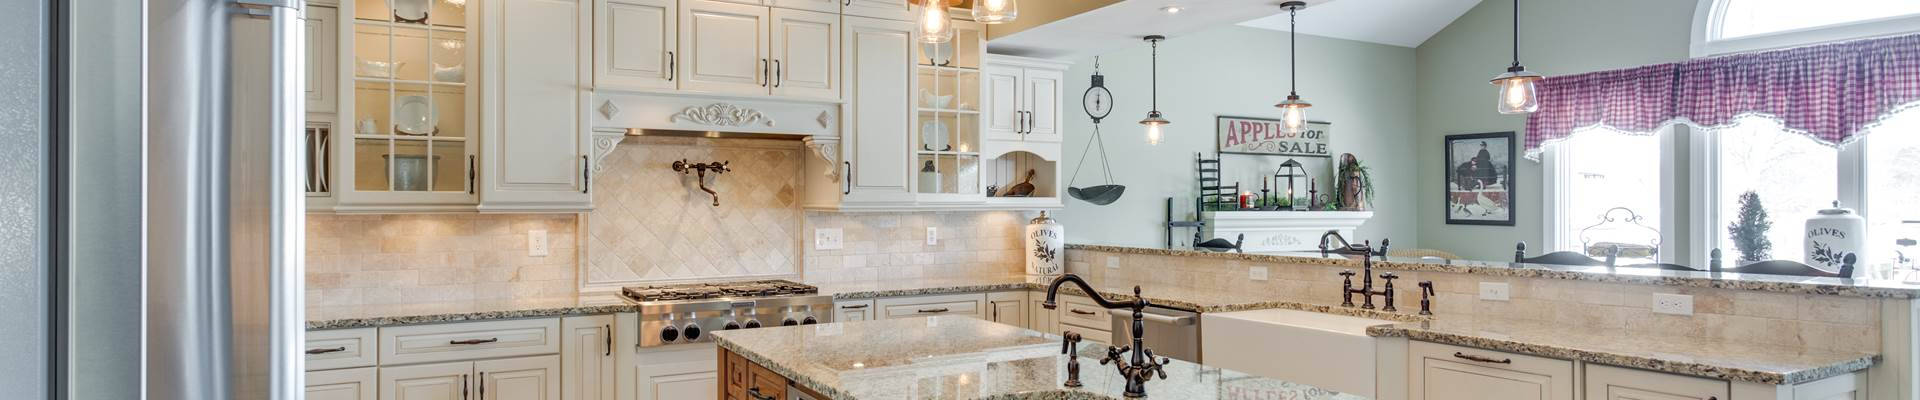 Reico Kitchen Bath - Kitchen remodeling williamsburg va